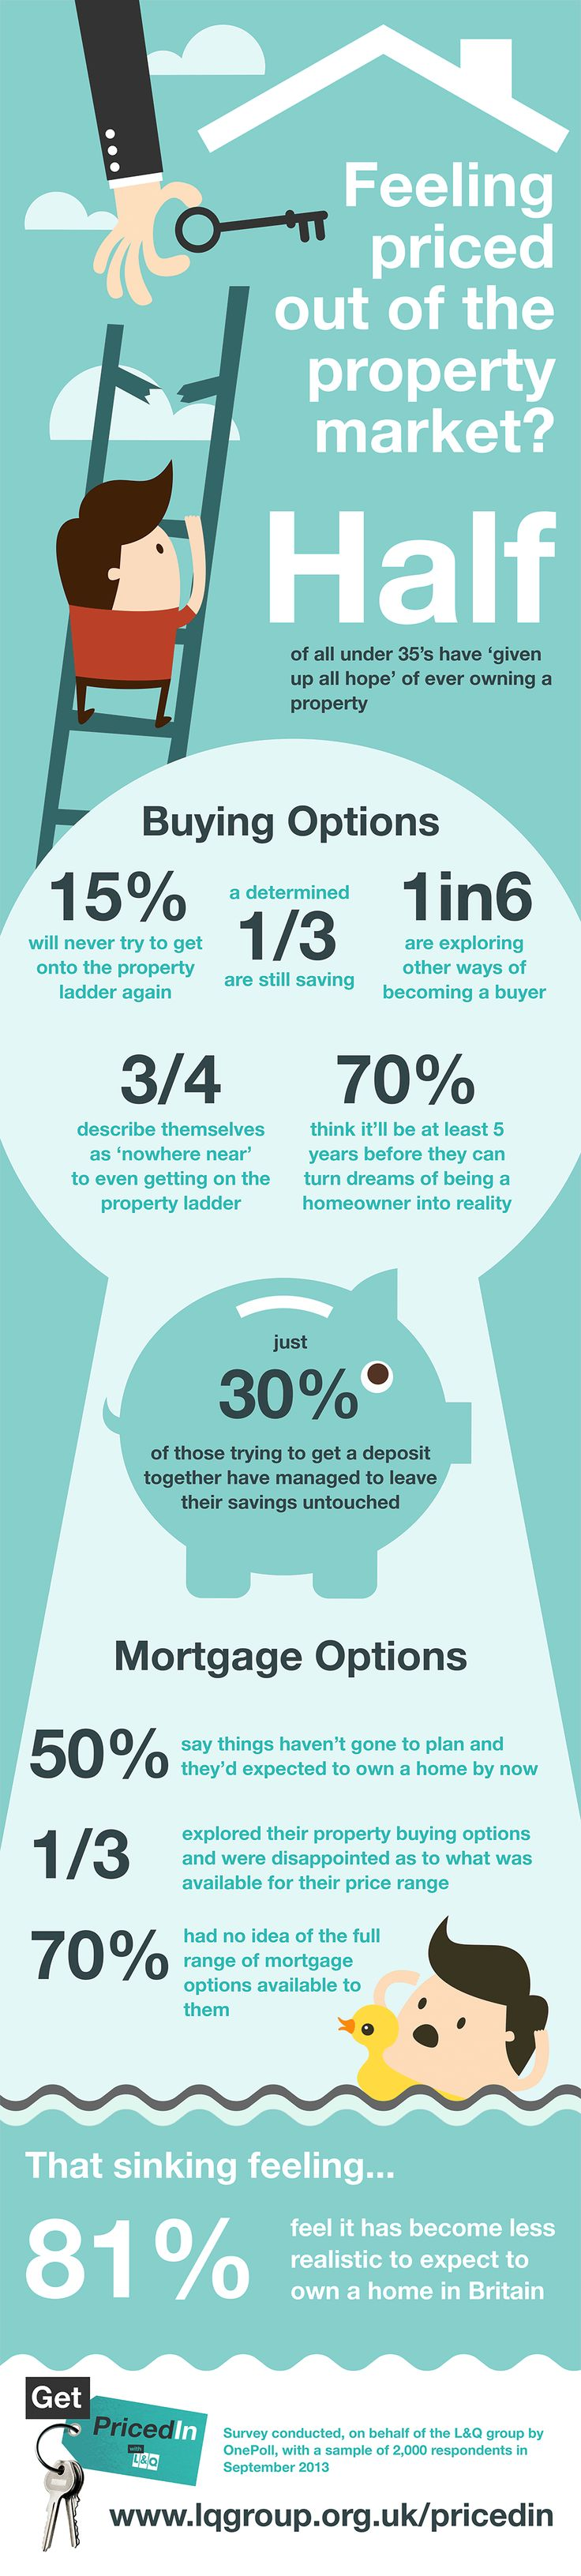 Feeling Priced Out Of the Property Market? [INFOGRAPHIC] #pricedout #propertymarket